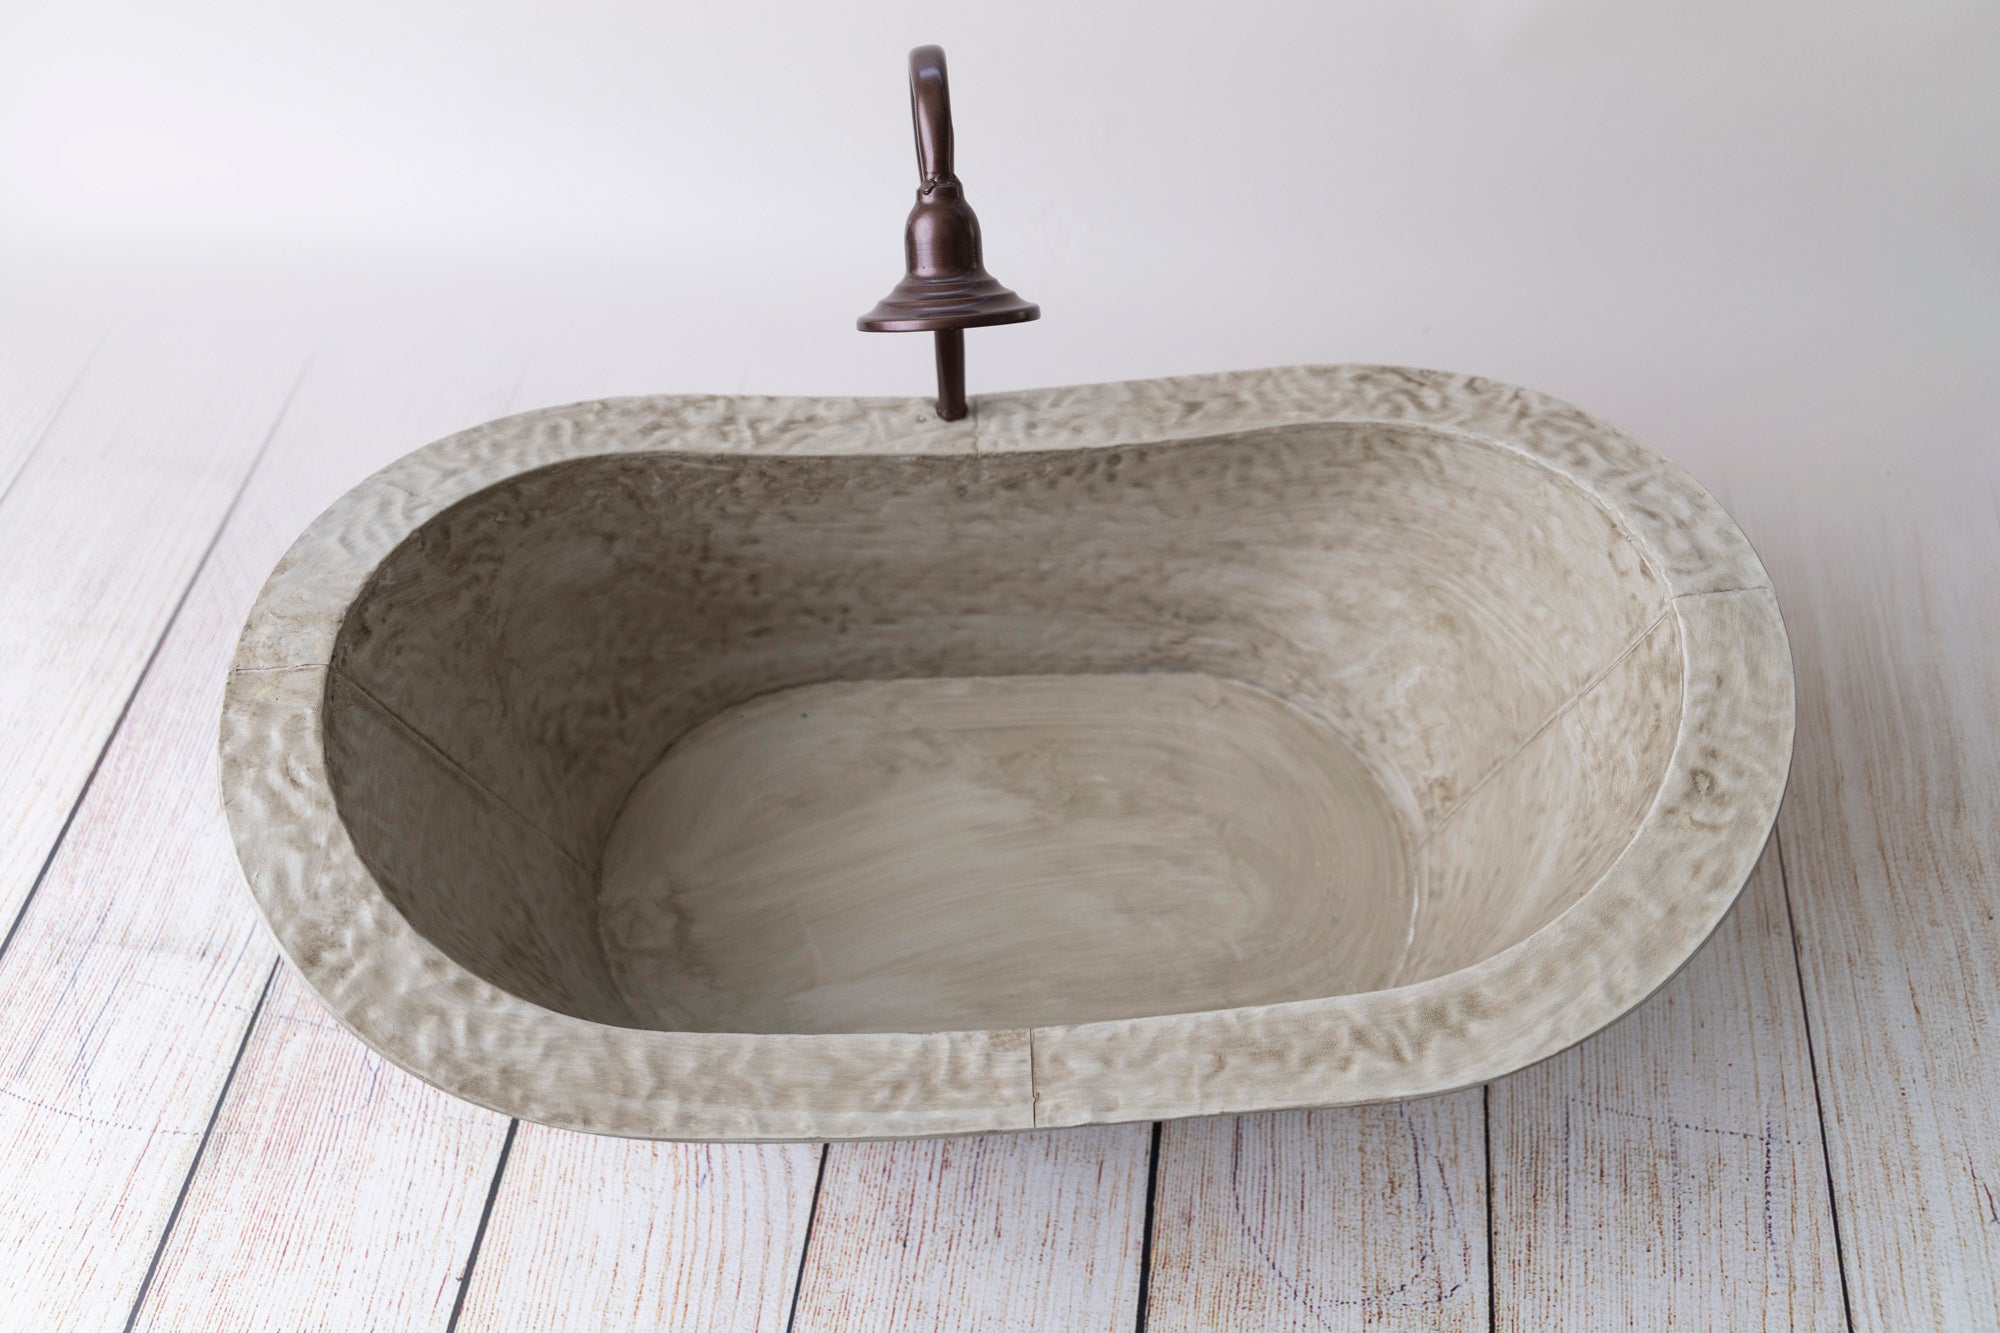 French Bateau Clawfoot Bathtub